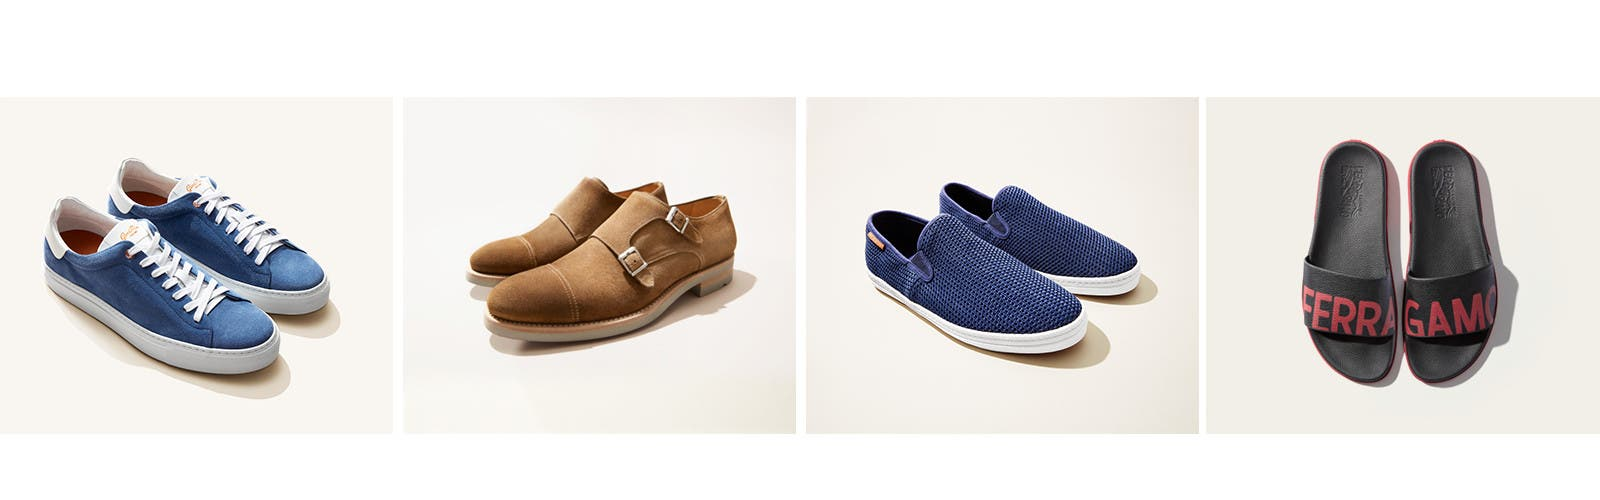 de7f626816f9e0 New men s shoes for spring.